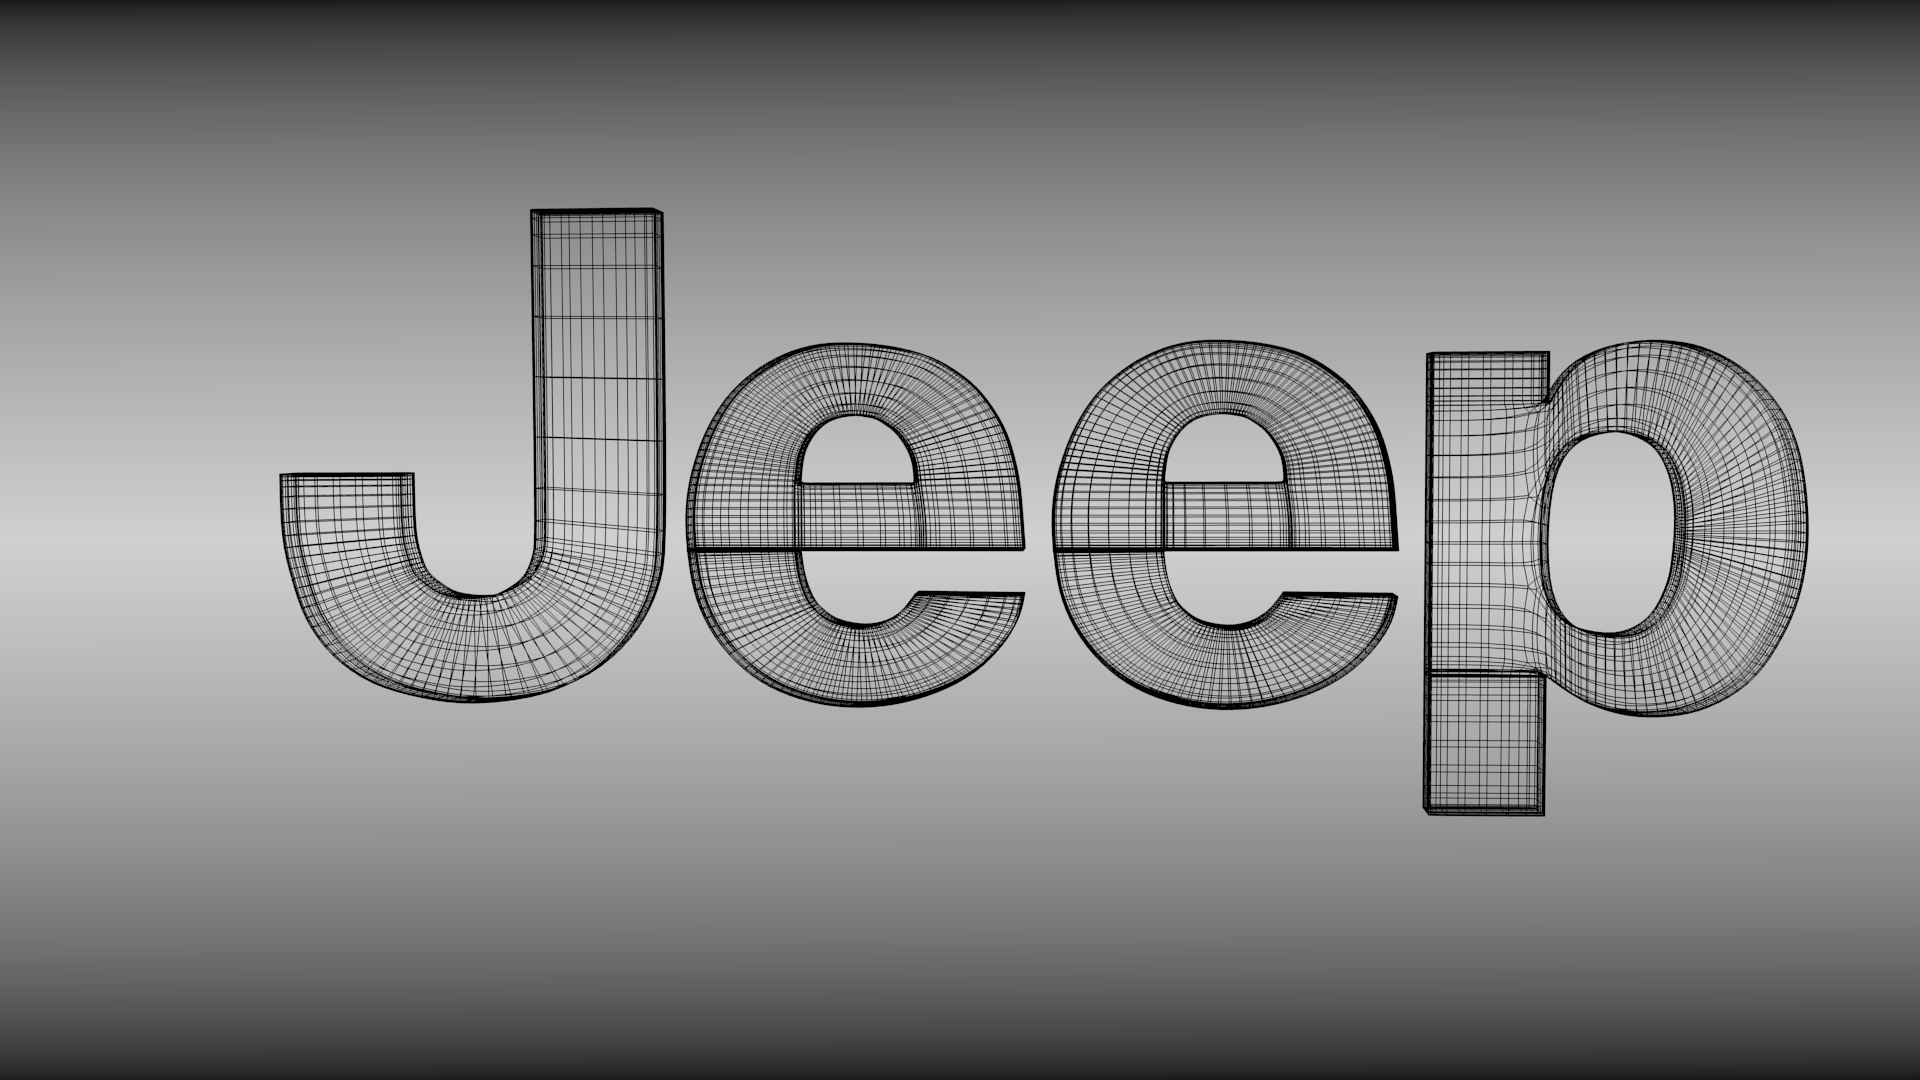 jeep logo hd wallpaper - photo #28